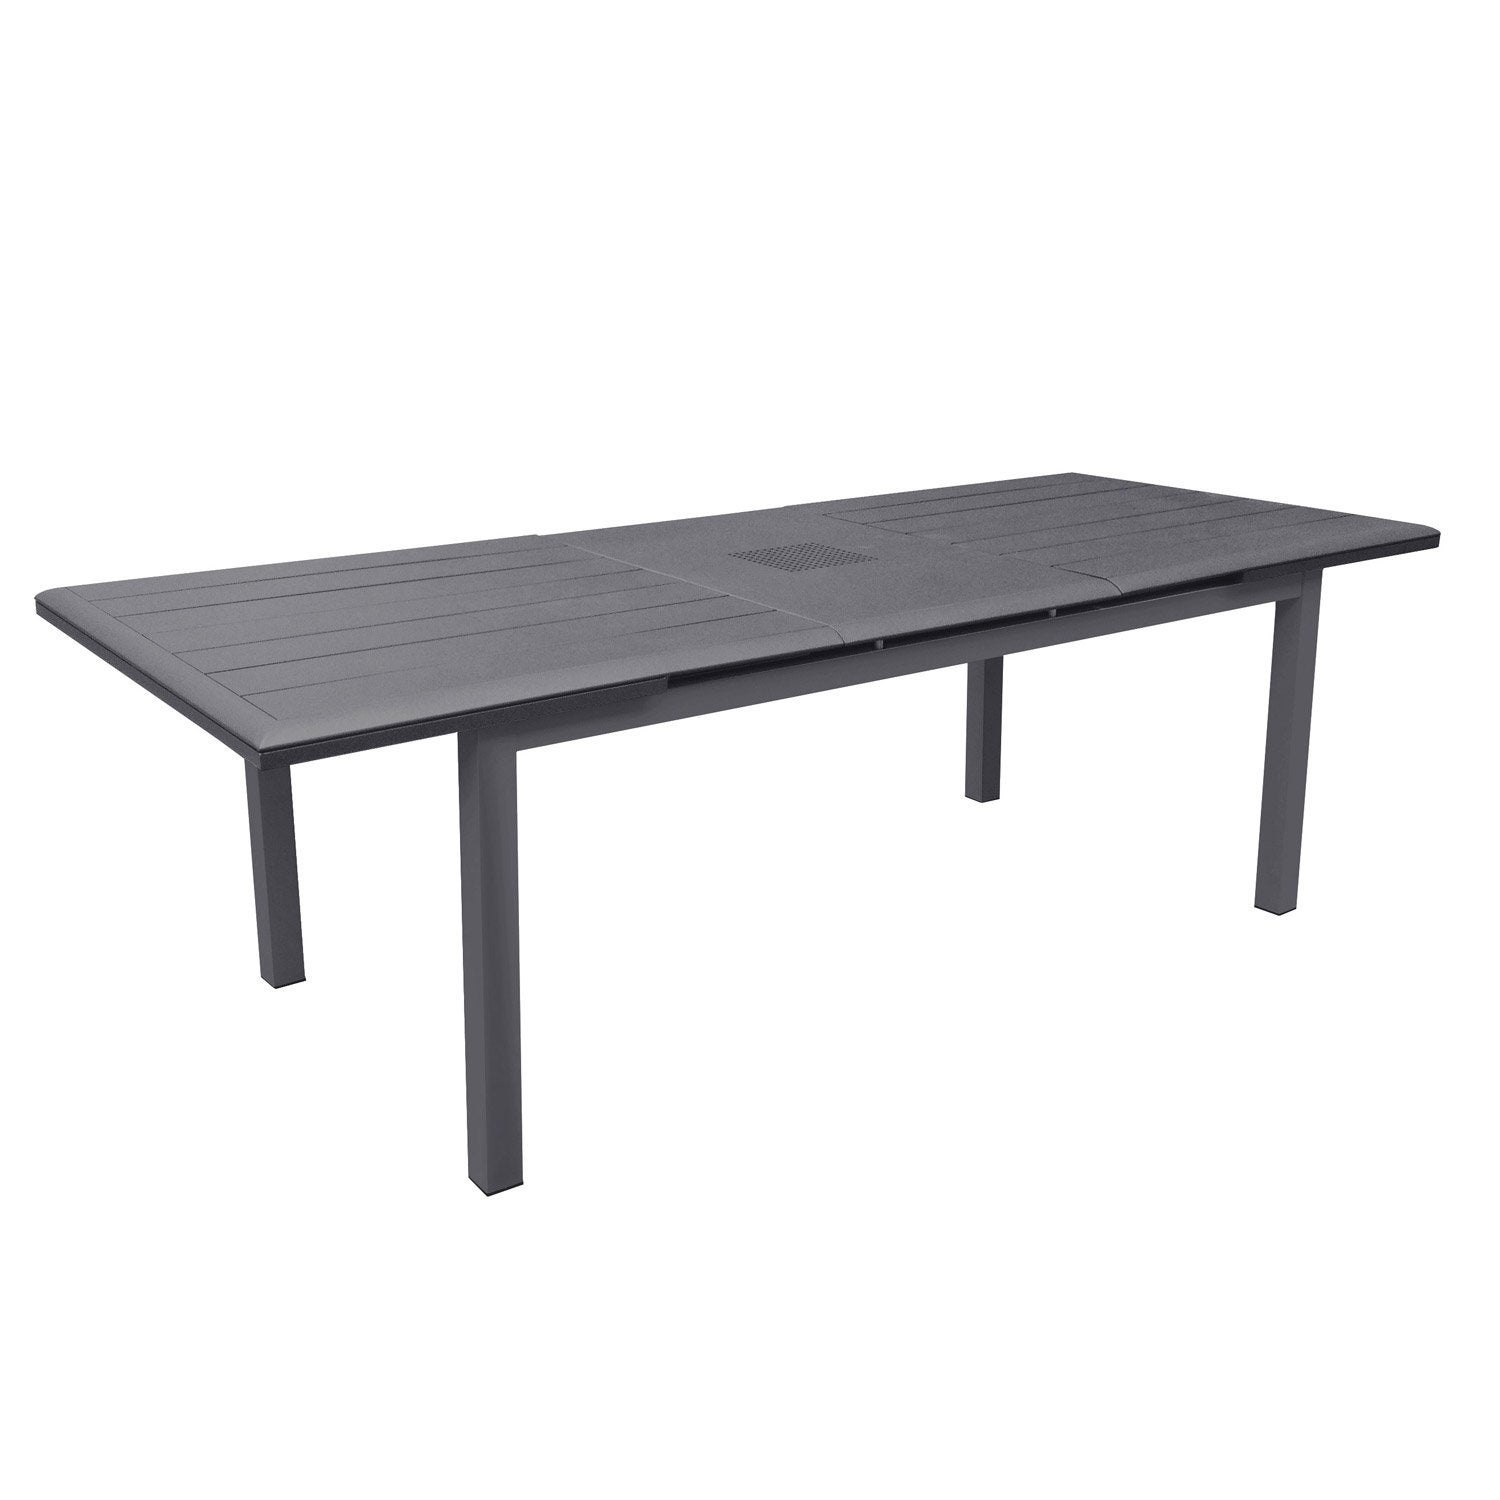 Table de jardin louisiane rectangulaire gris 6 8 personnes for Table de jardin 8 personnes